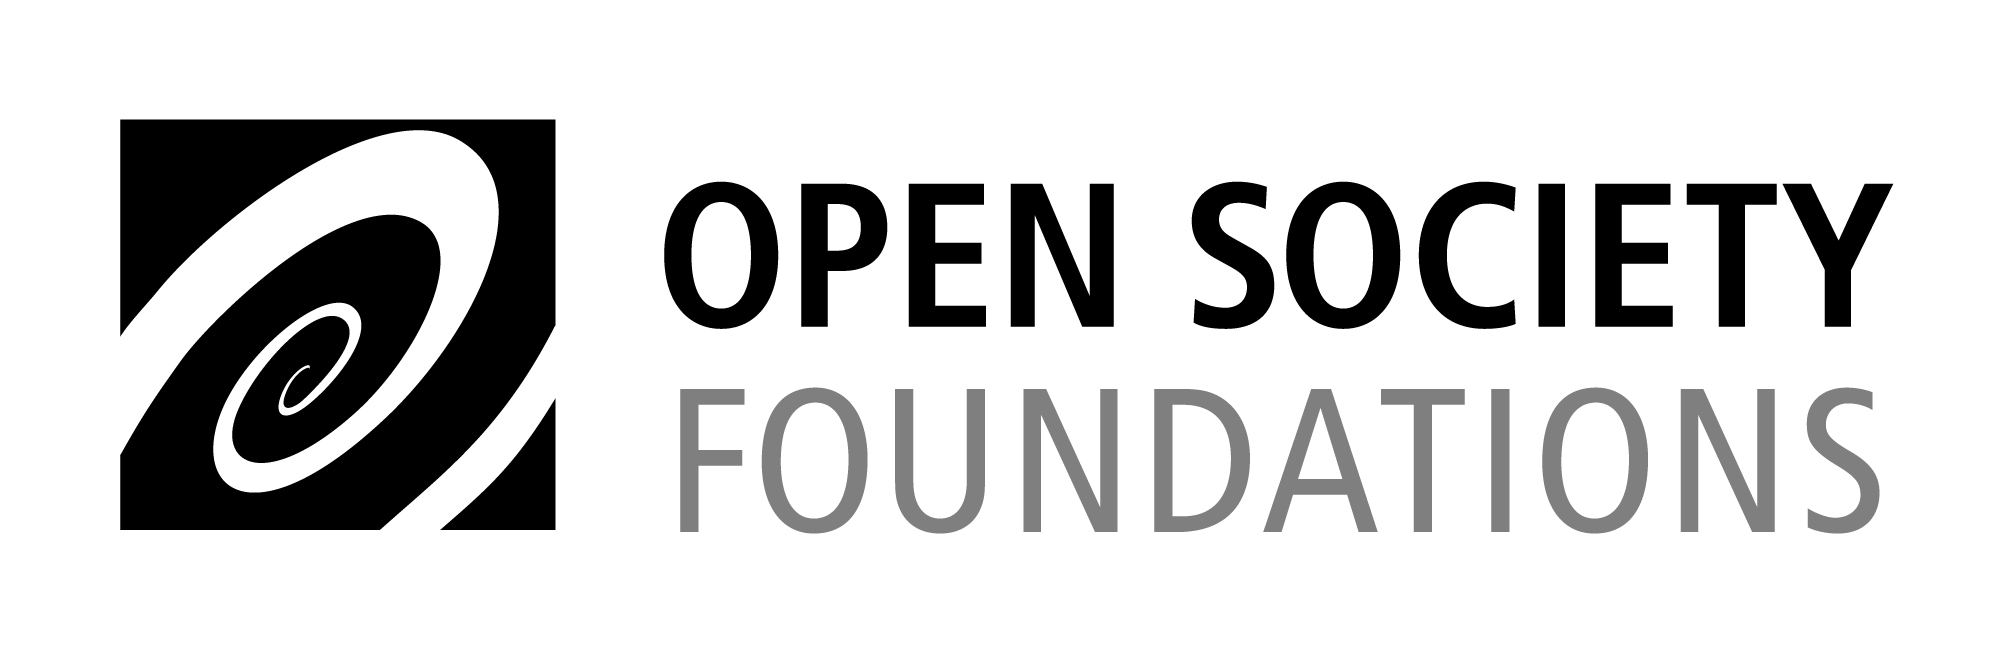 Picture Open Society Foundation